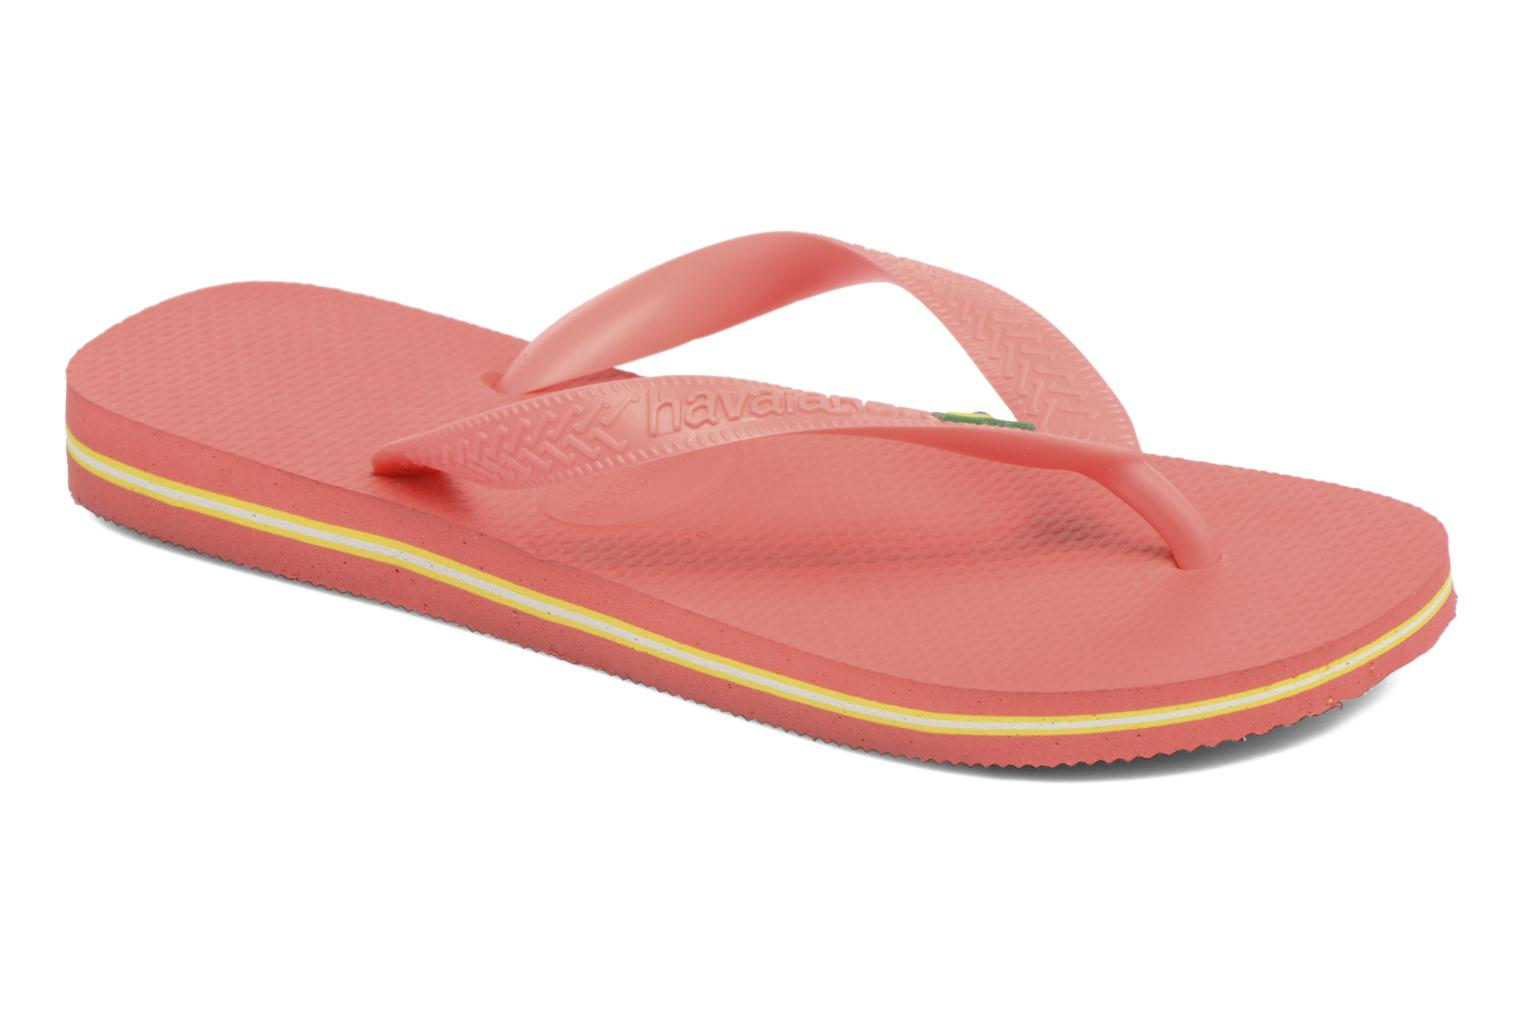 Marques Chaussure femme Havaianas femme Brazil Femme Coral New